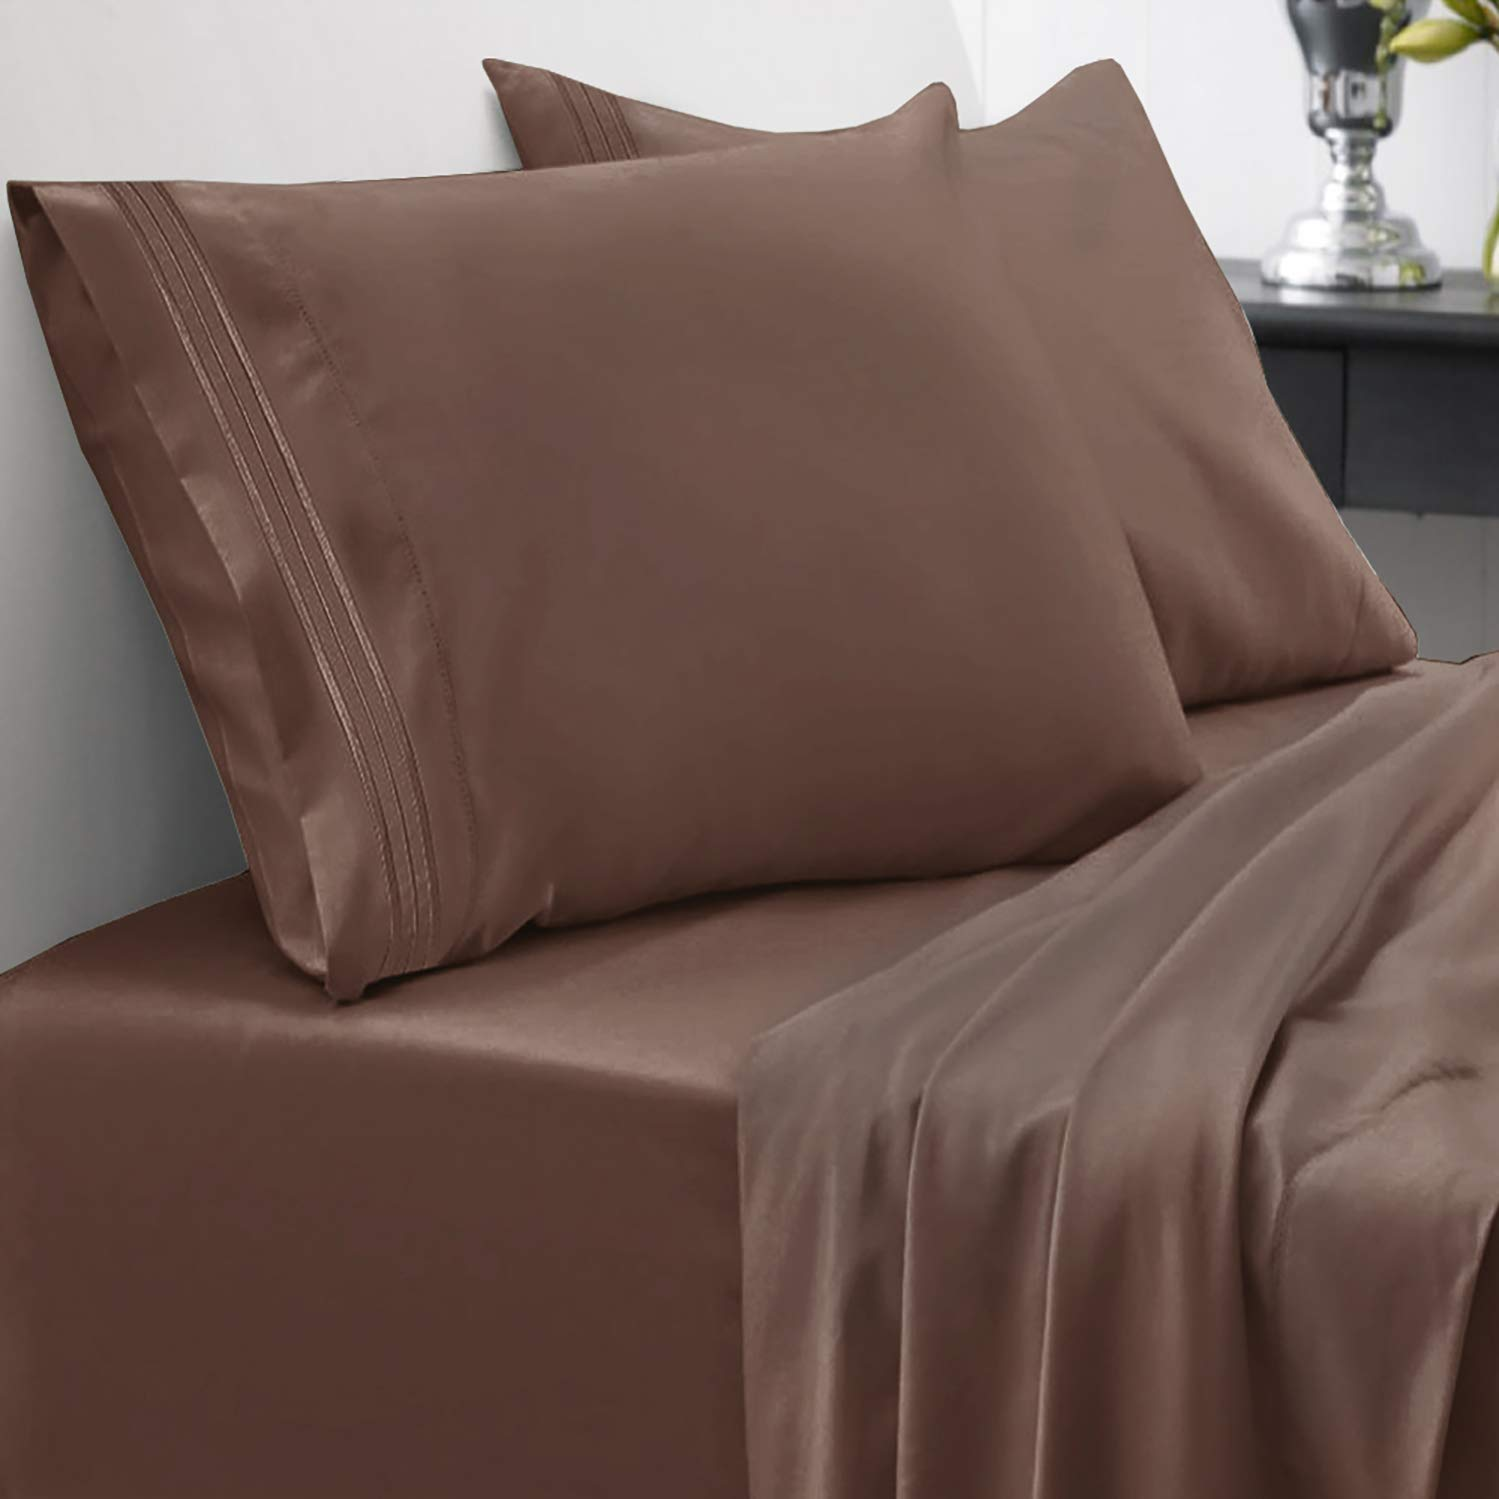 1800 Thread Count Sheet Set – Soft Egyptian Quality Brushed Microfiber Hypoallergenic Sheets – Luxury Bedding Set with Flat Sheet, Fitted Sheet, 2 Pillow Cases, Full, Brown